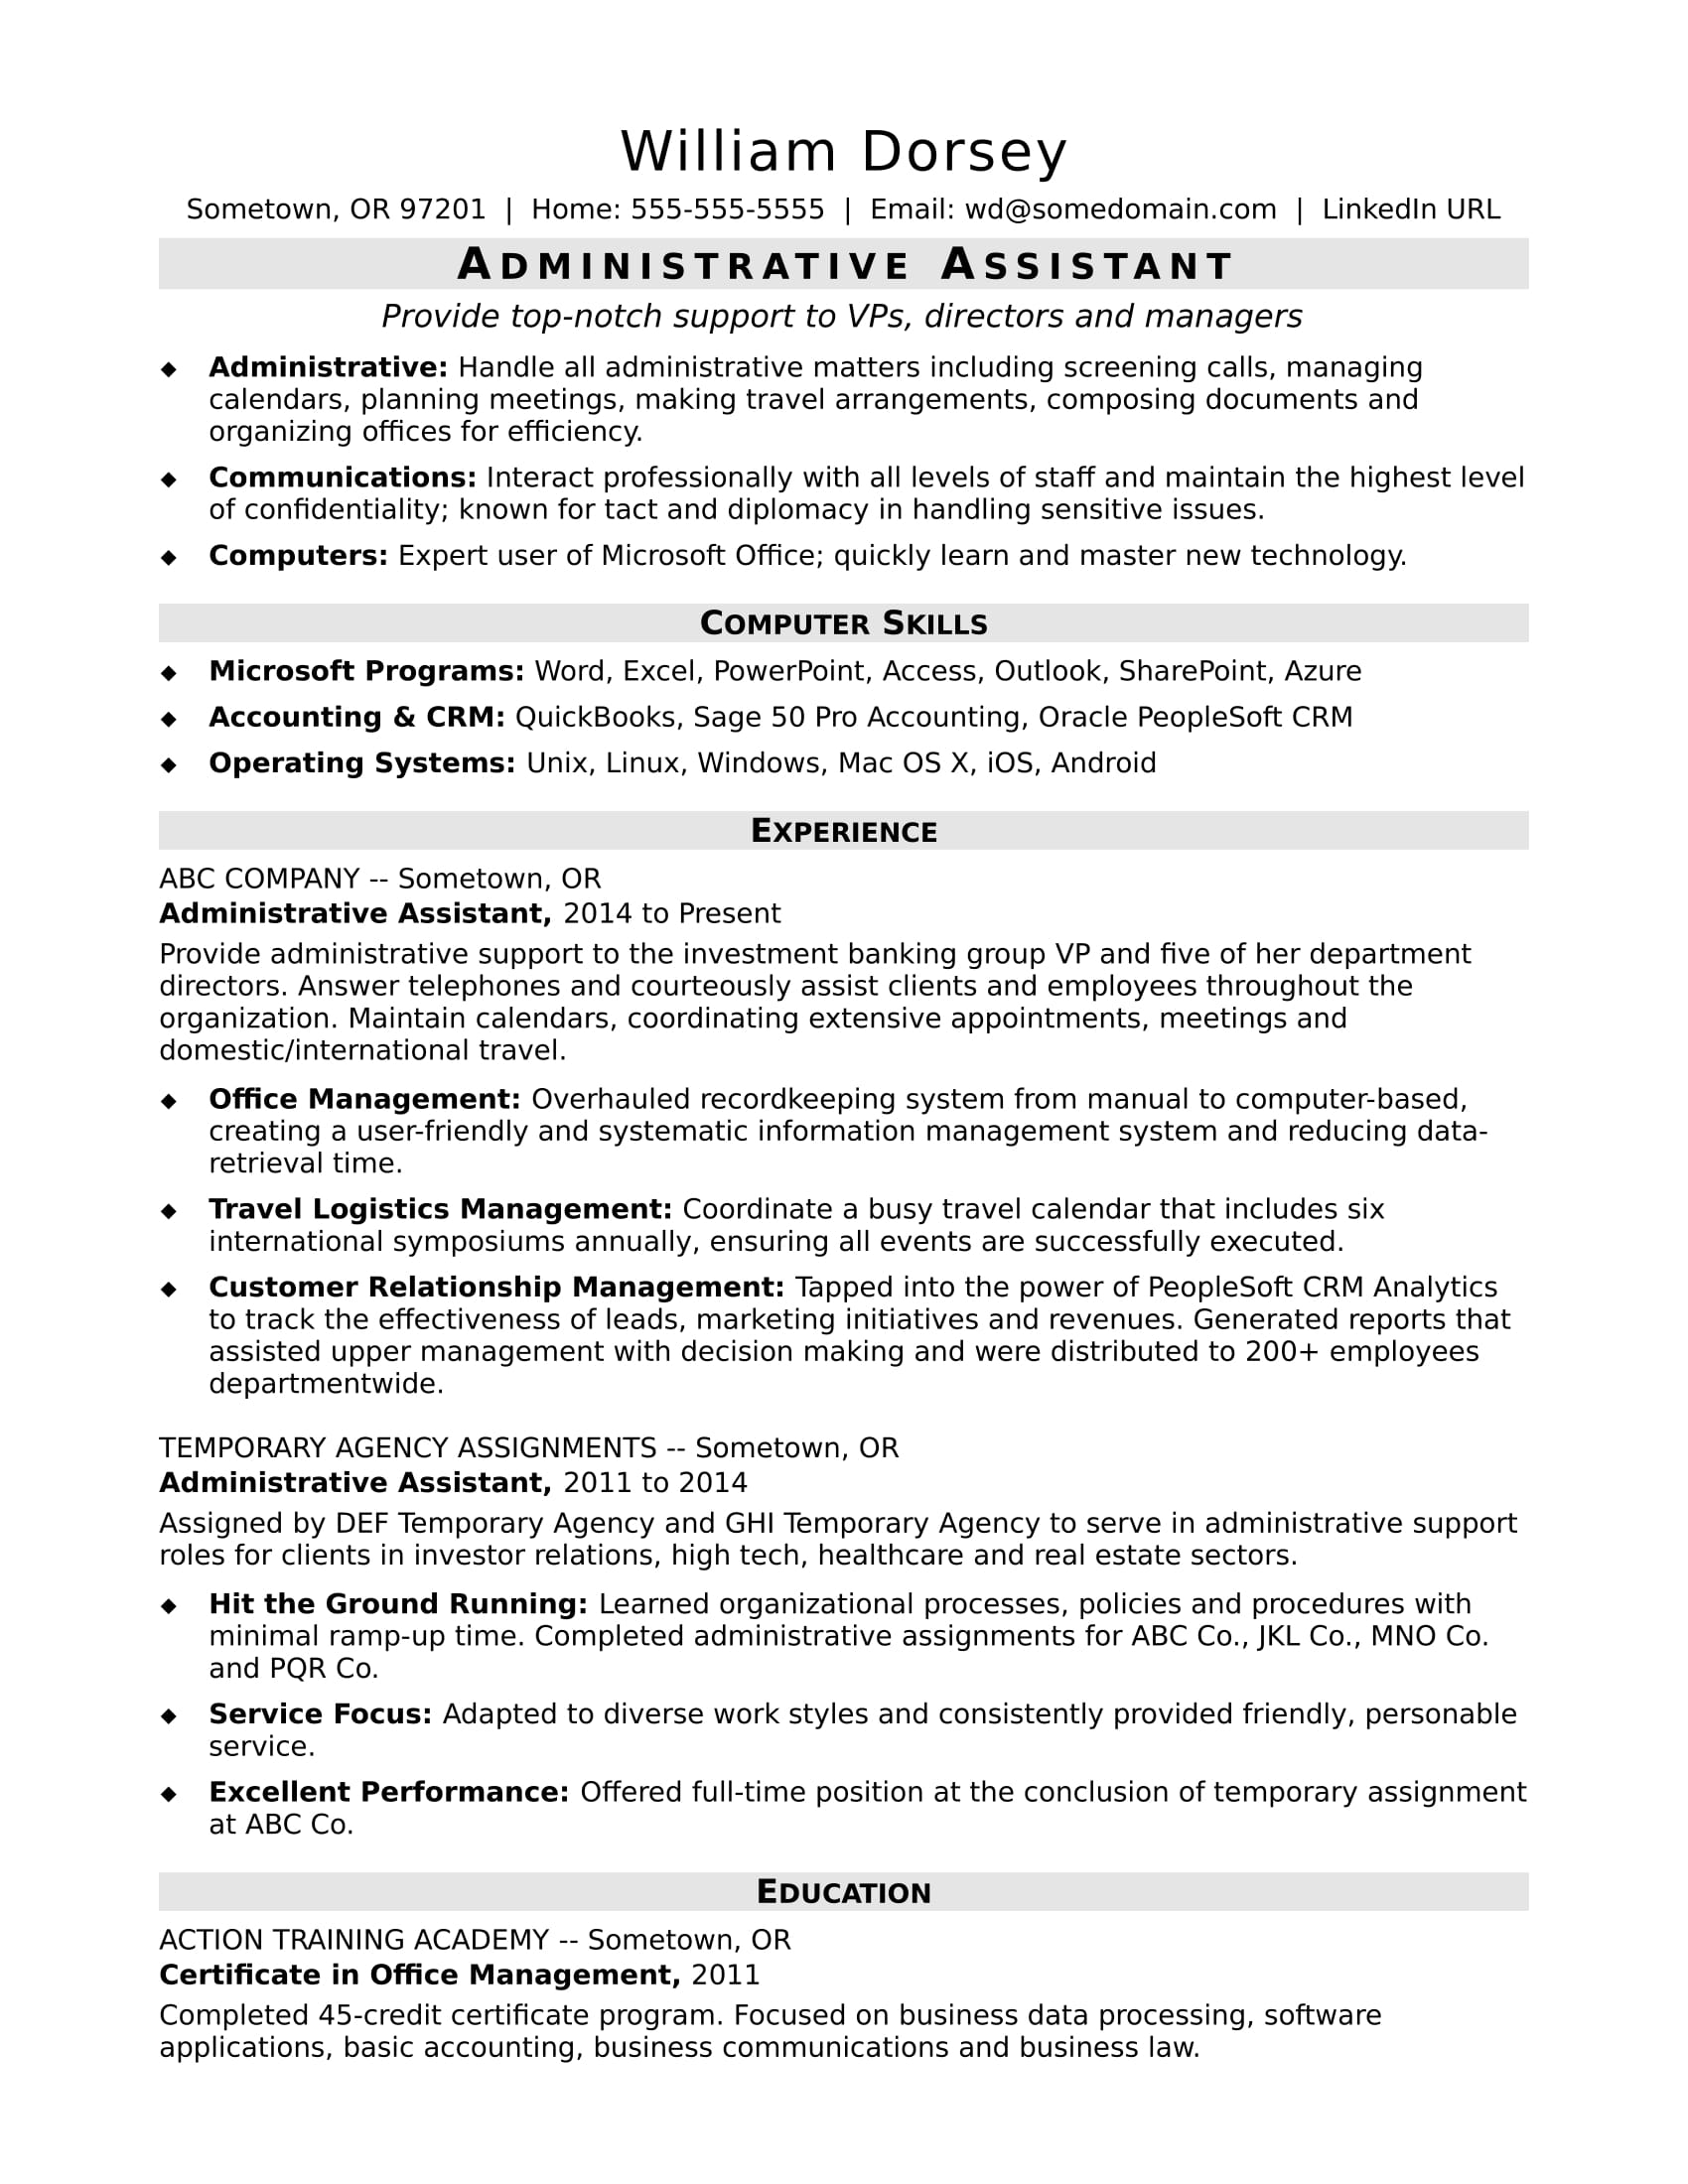 midlevel administrative assistant resume sample monster format for supervise synonym ios Resume Resume Format For Administrative Assistant